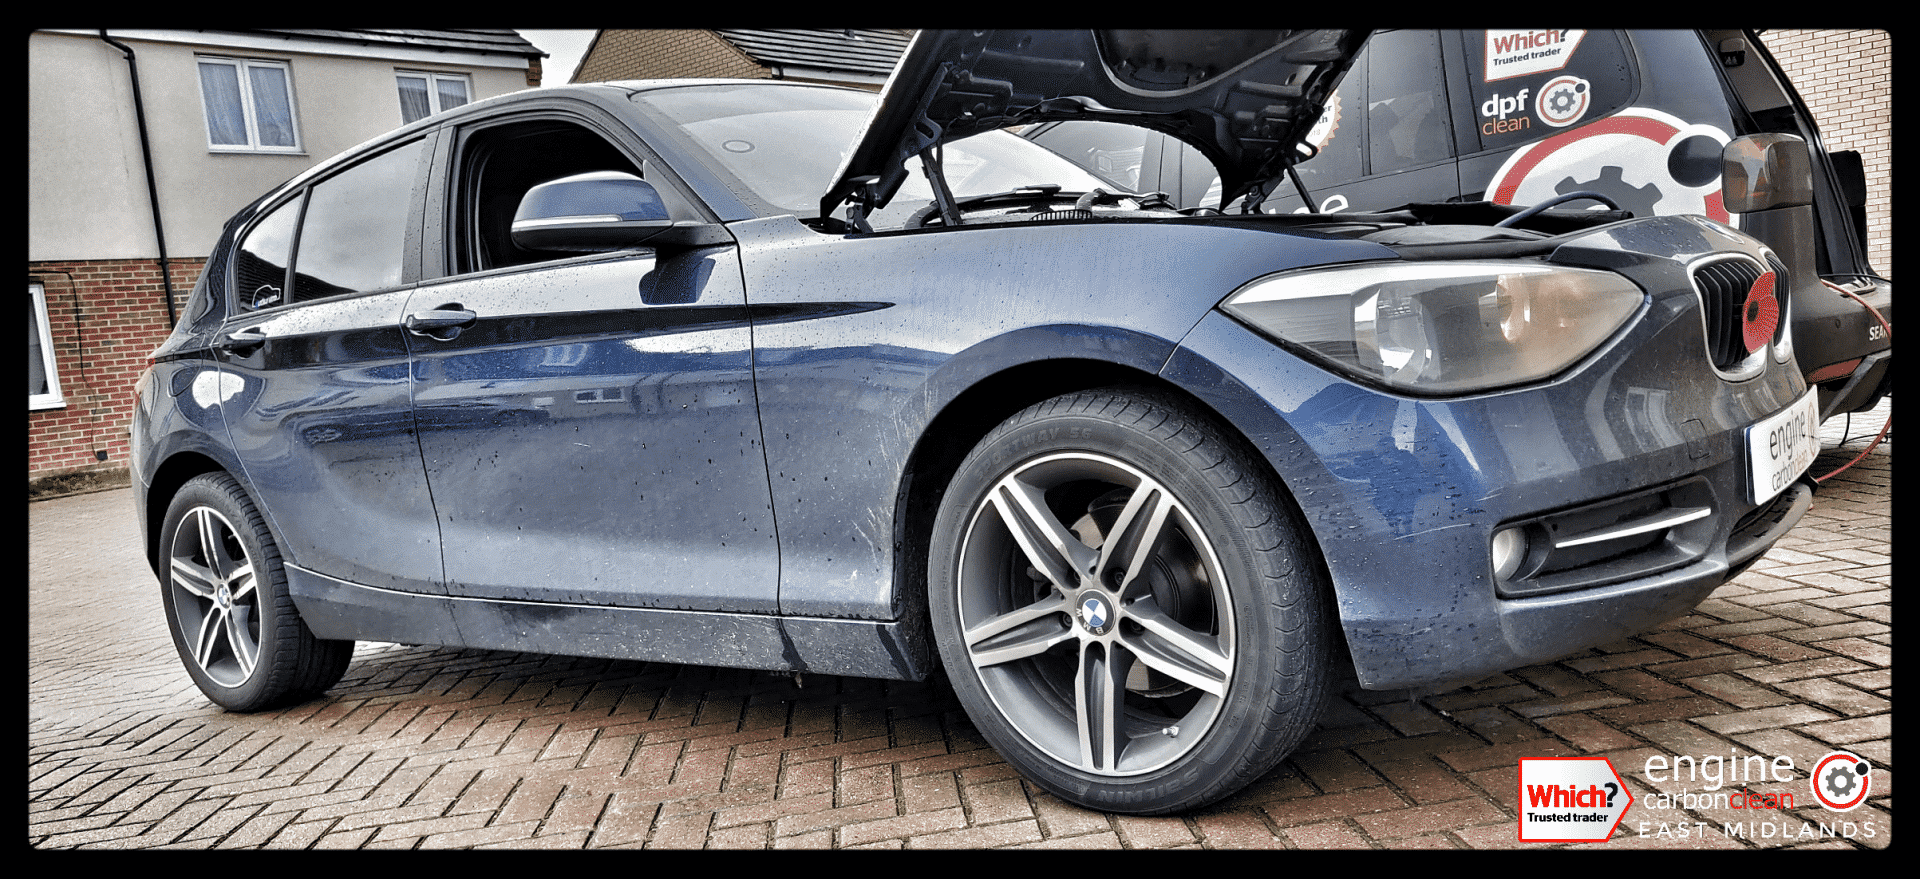 Diagnostic Consultation and Engine Carbon Clean - BMW 116d (2015 - 58,098 miles)